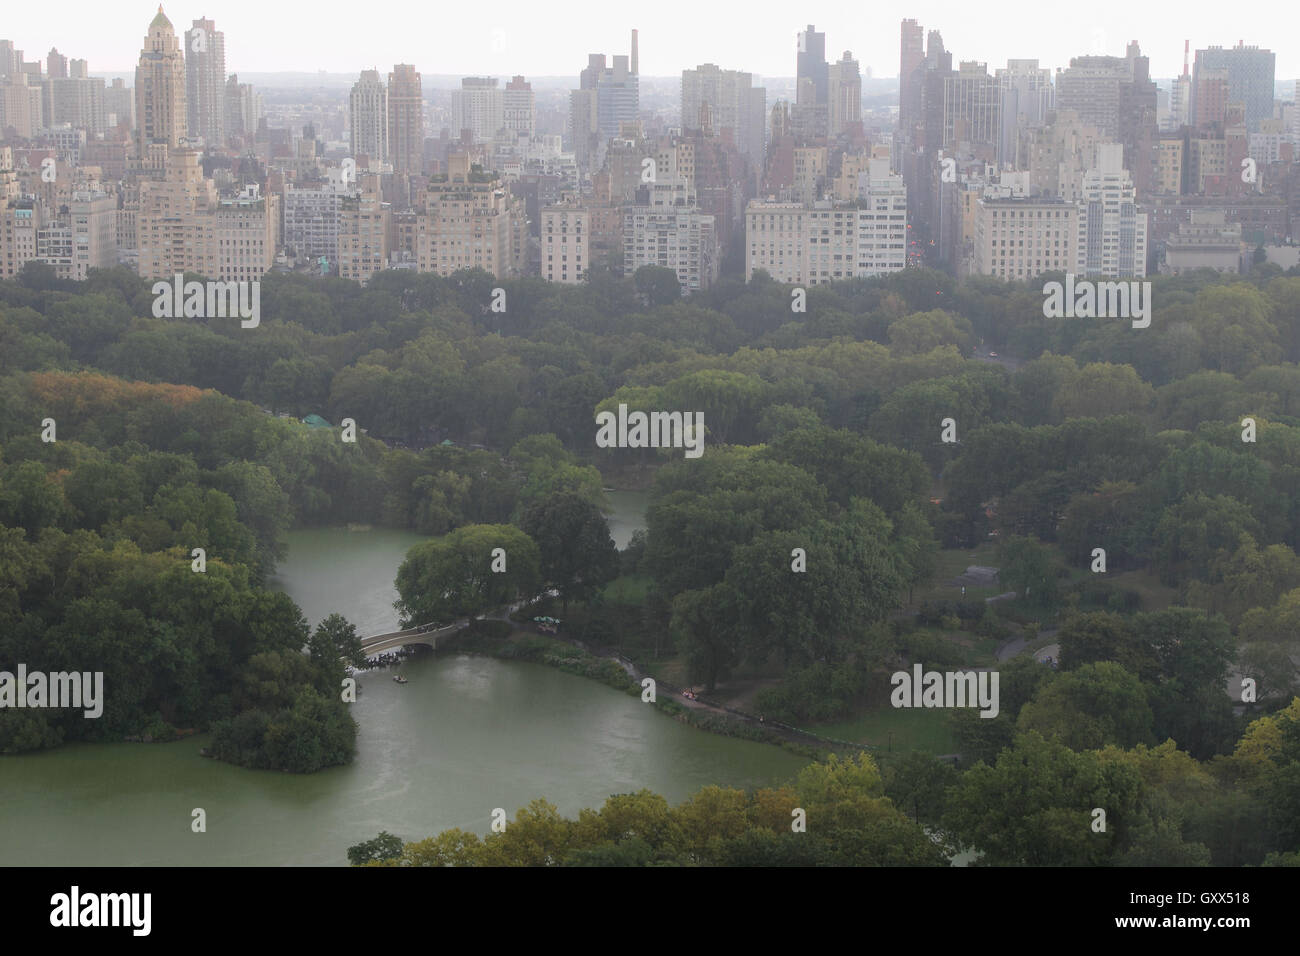 Heavy rain blurs the view of Central Park and Upper East Side. - Stock Image